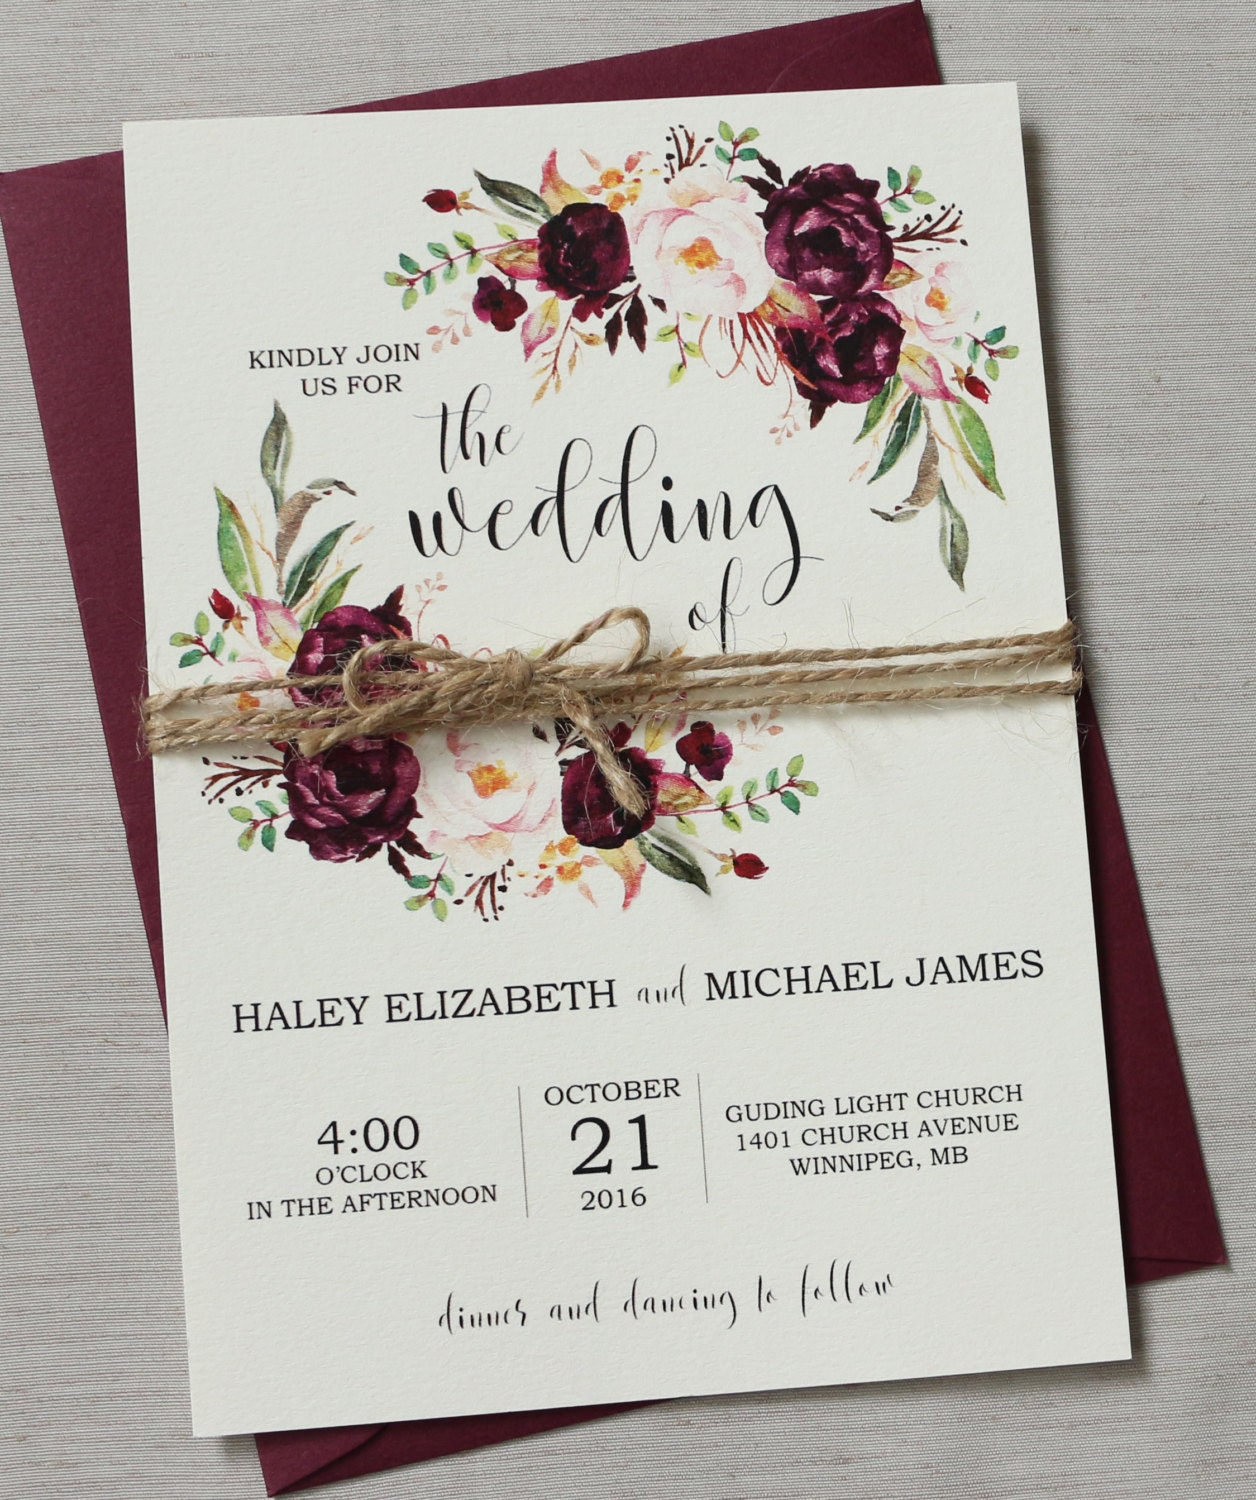 e wedding invitation - 28 images - 16 printable wedding invitation ...